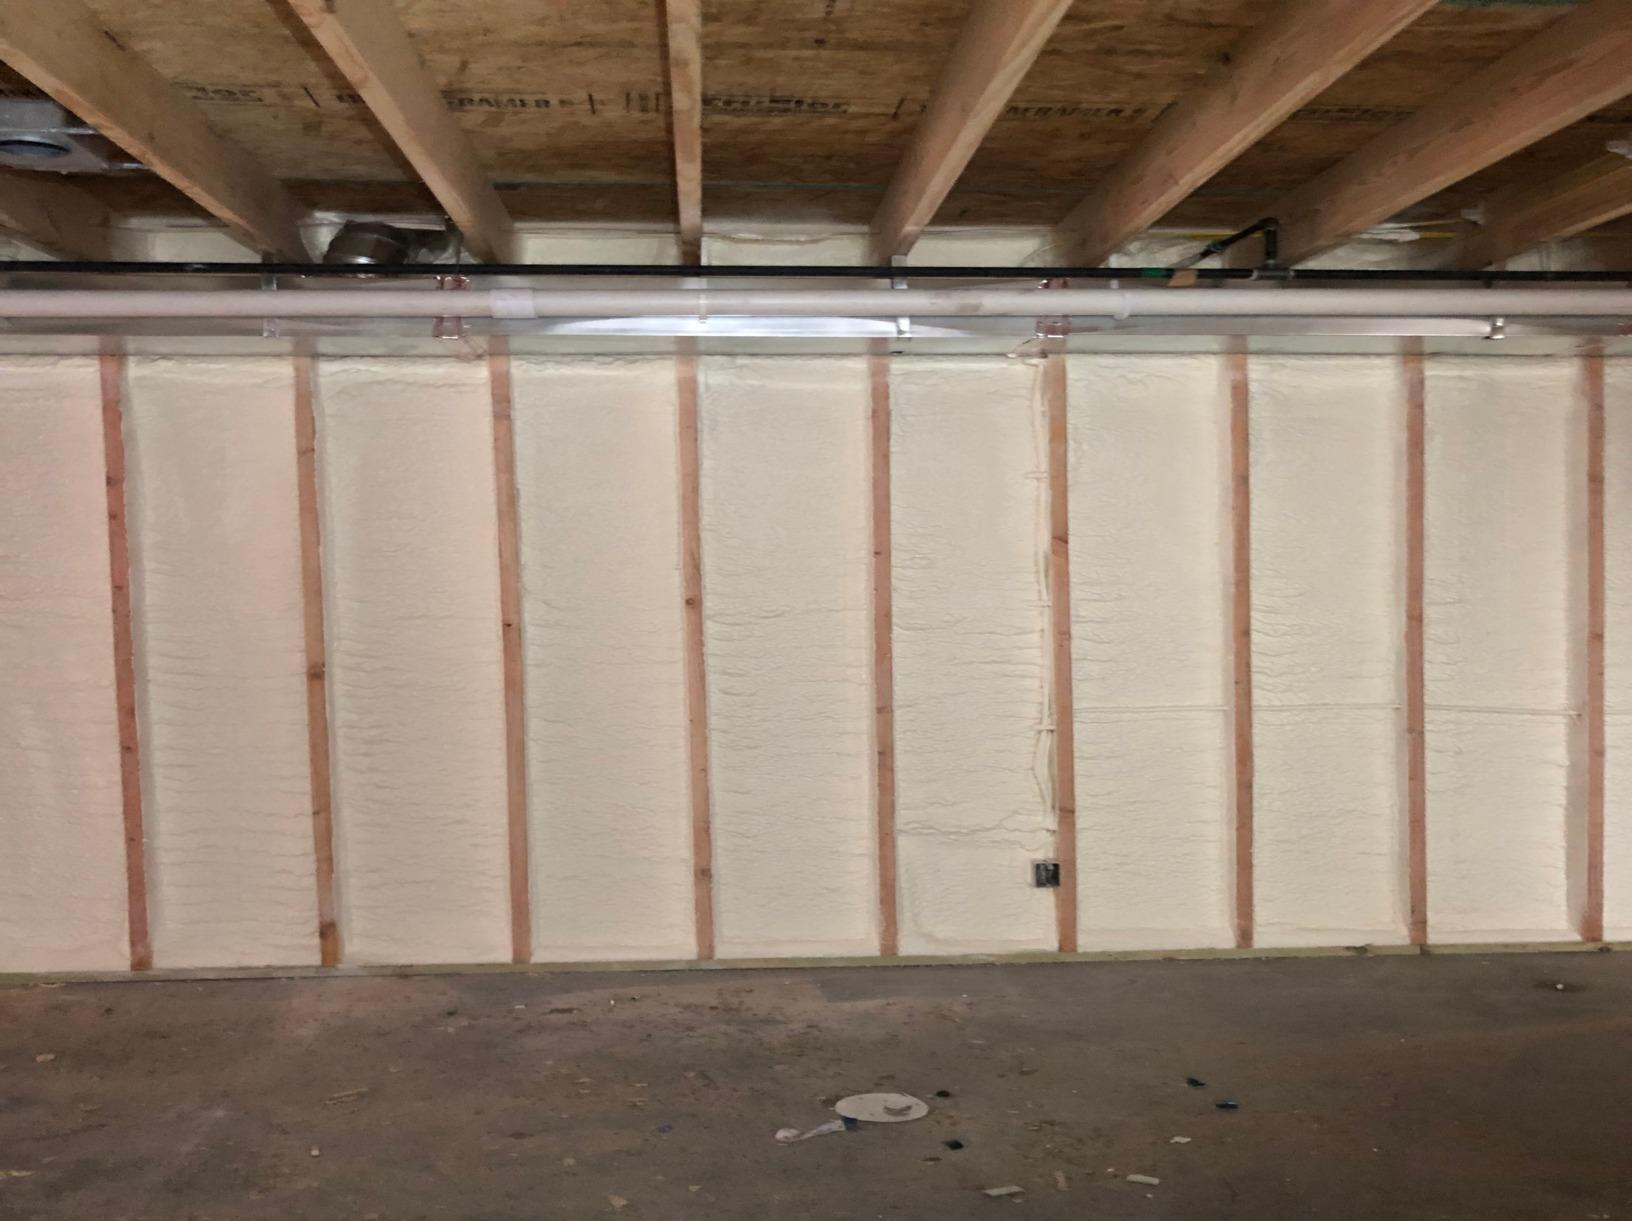 Basement Wall Insulation in Lawrence, Ks - After Photo